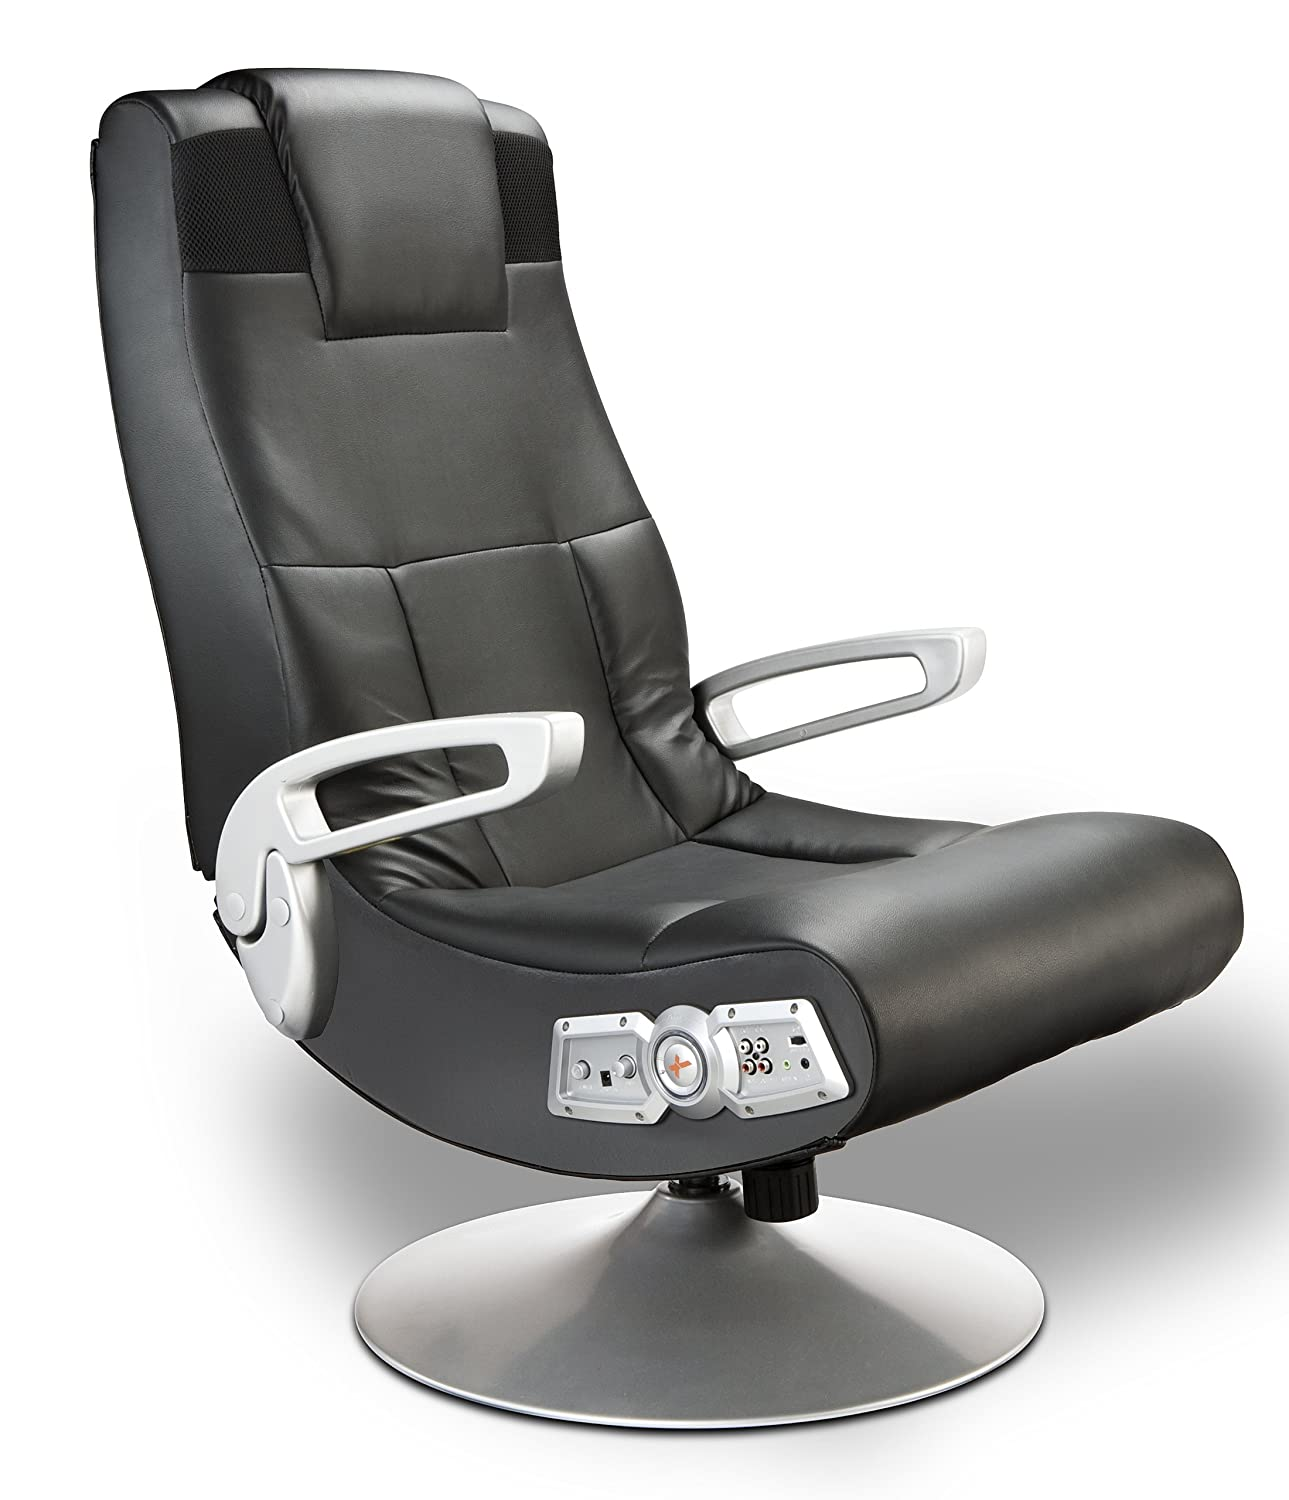 X Rocker Pedestal Video Gaming Chair, Wireless